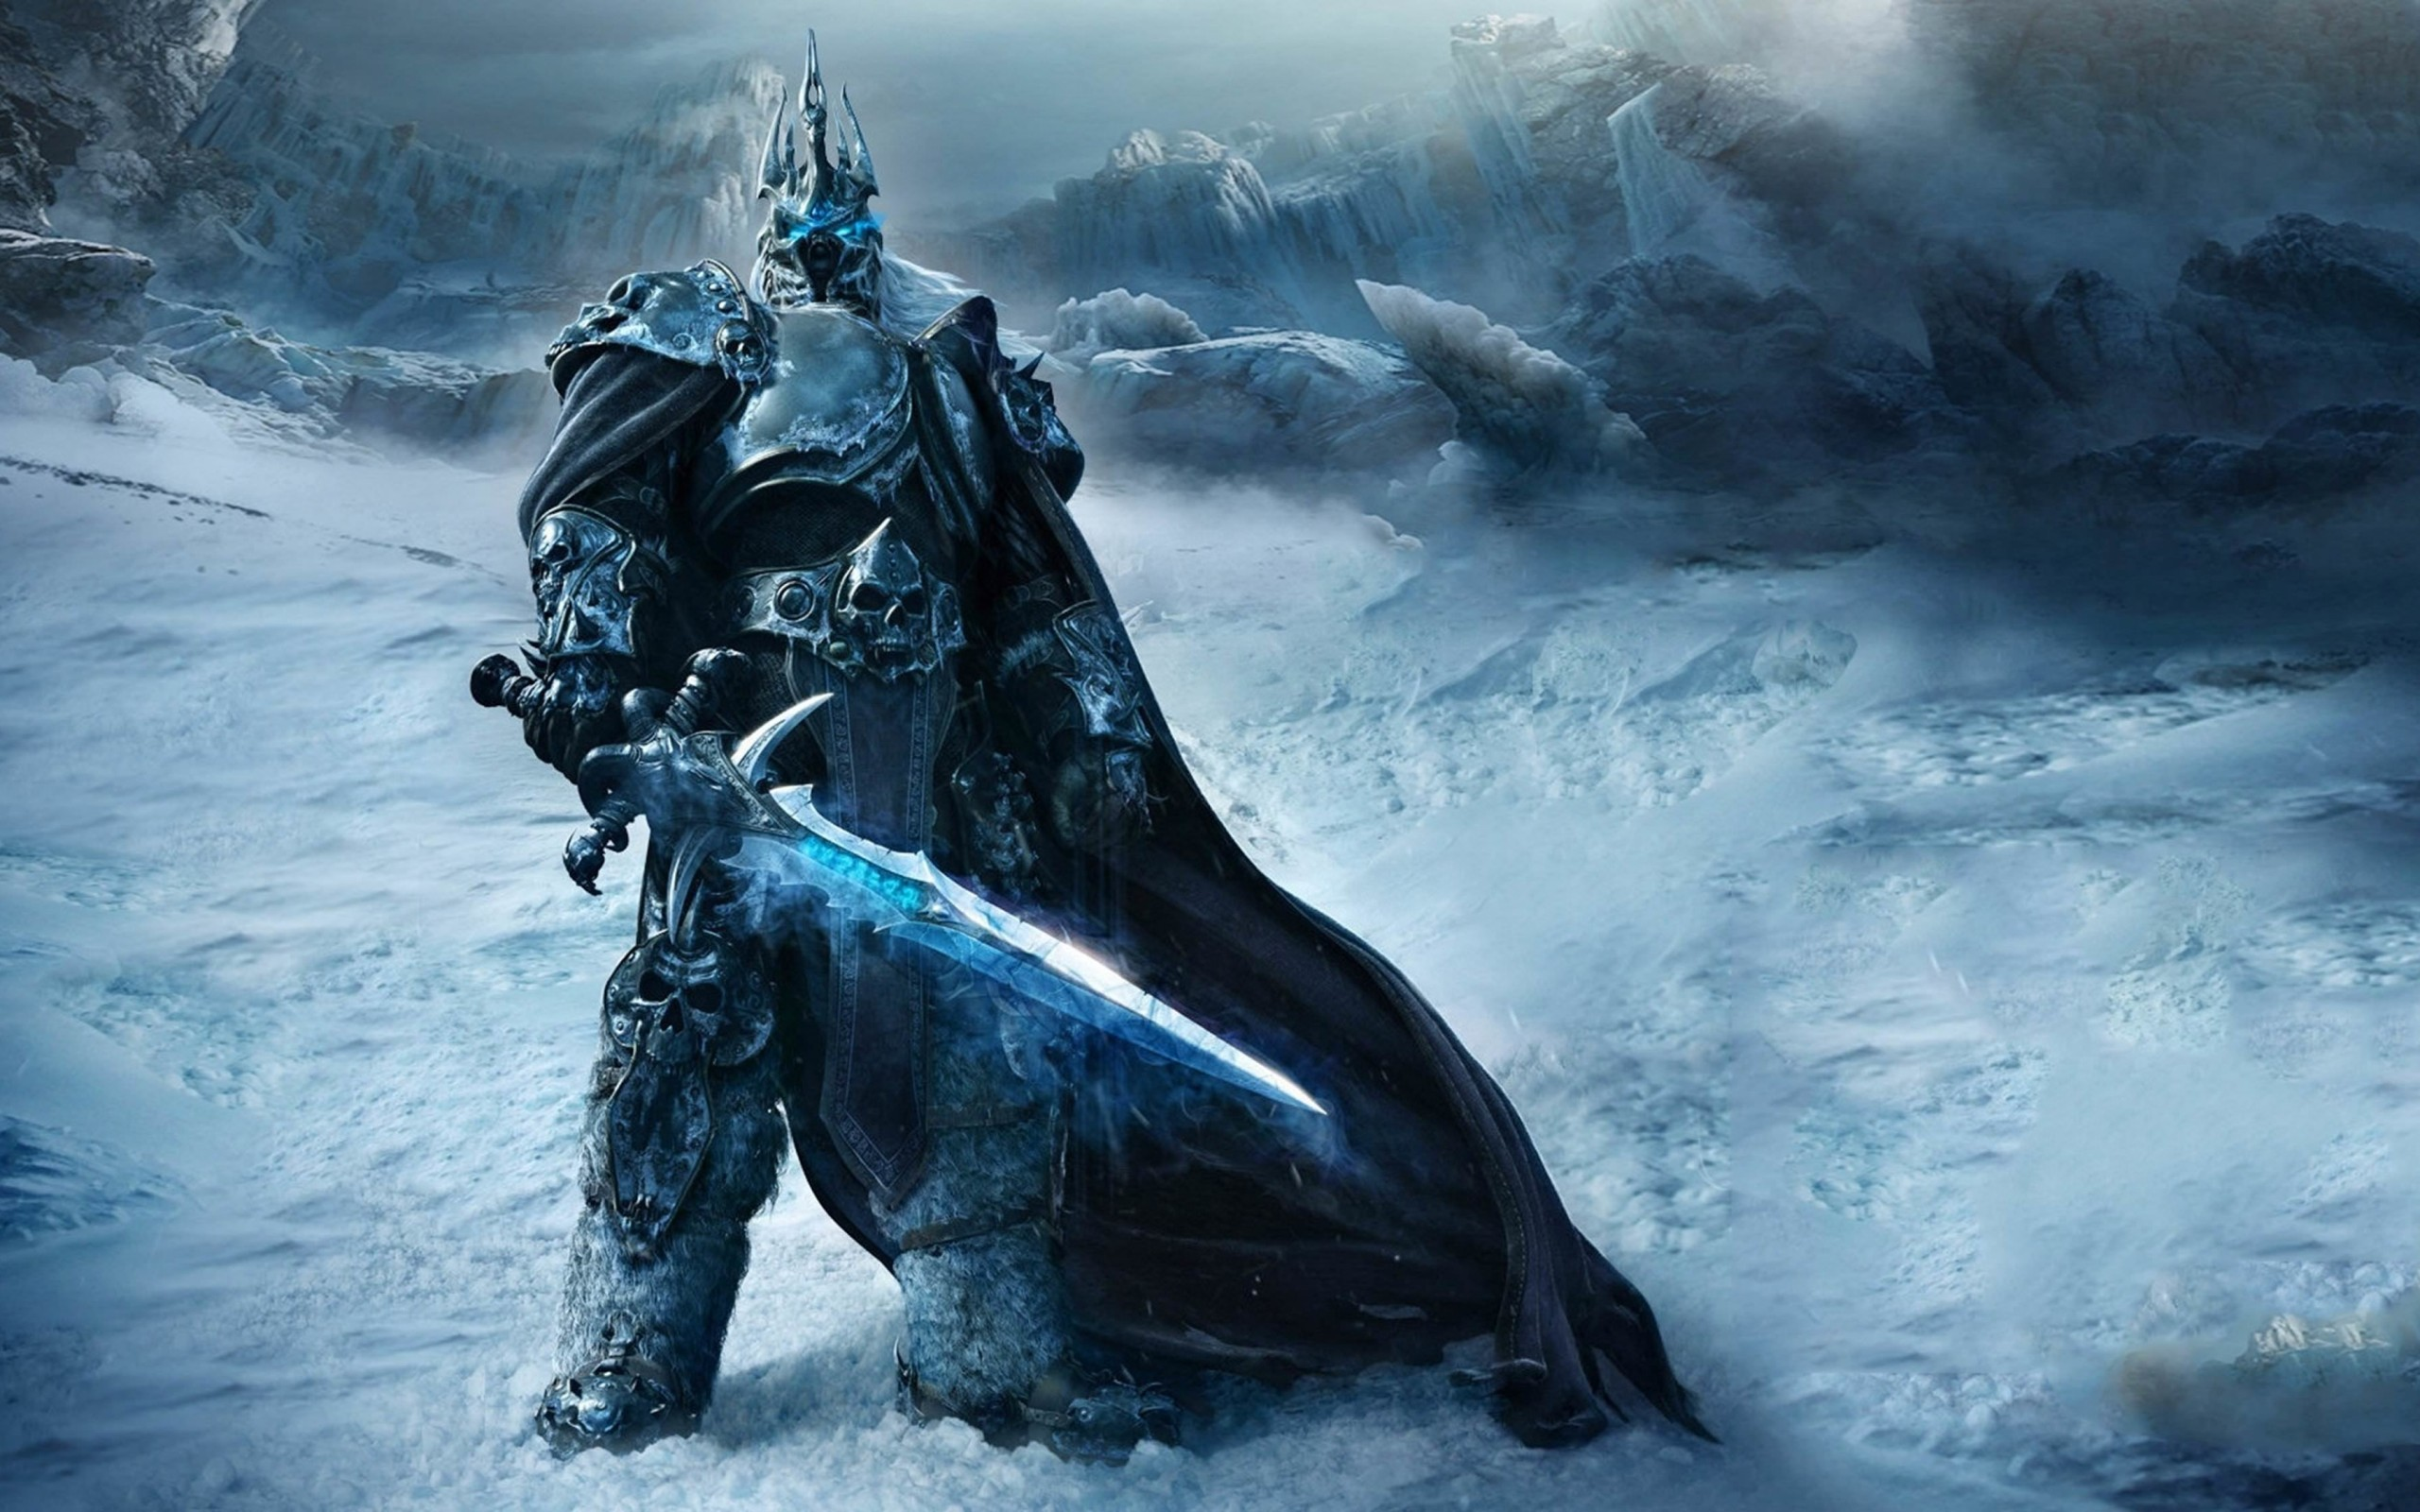 World of Warcraft: Wrath of the Lich King Wallpaper for Desktop 2560x1600